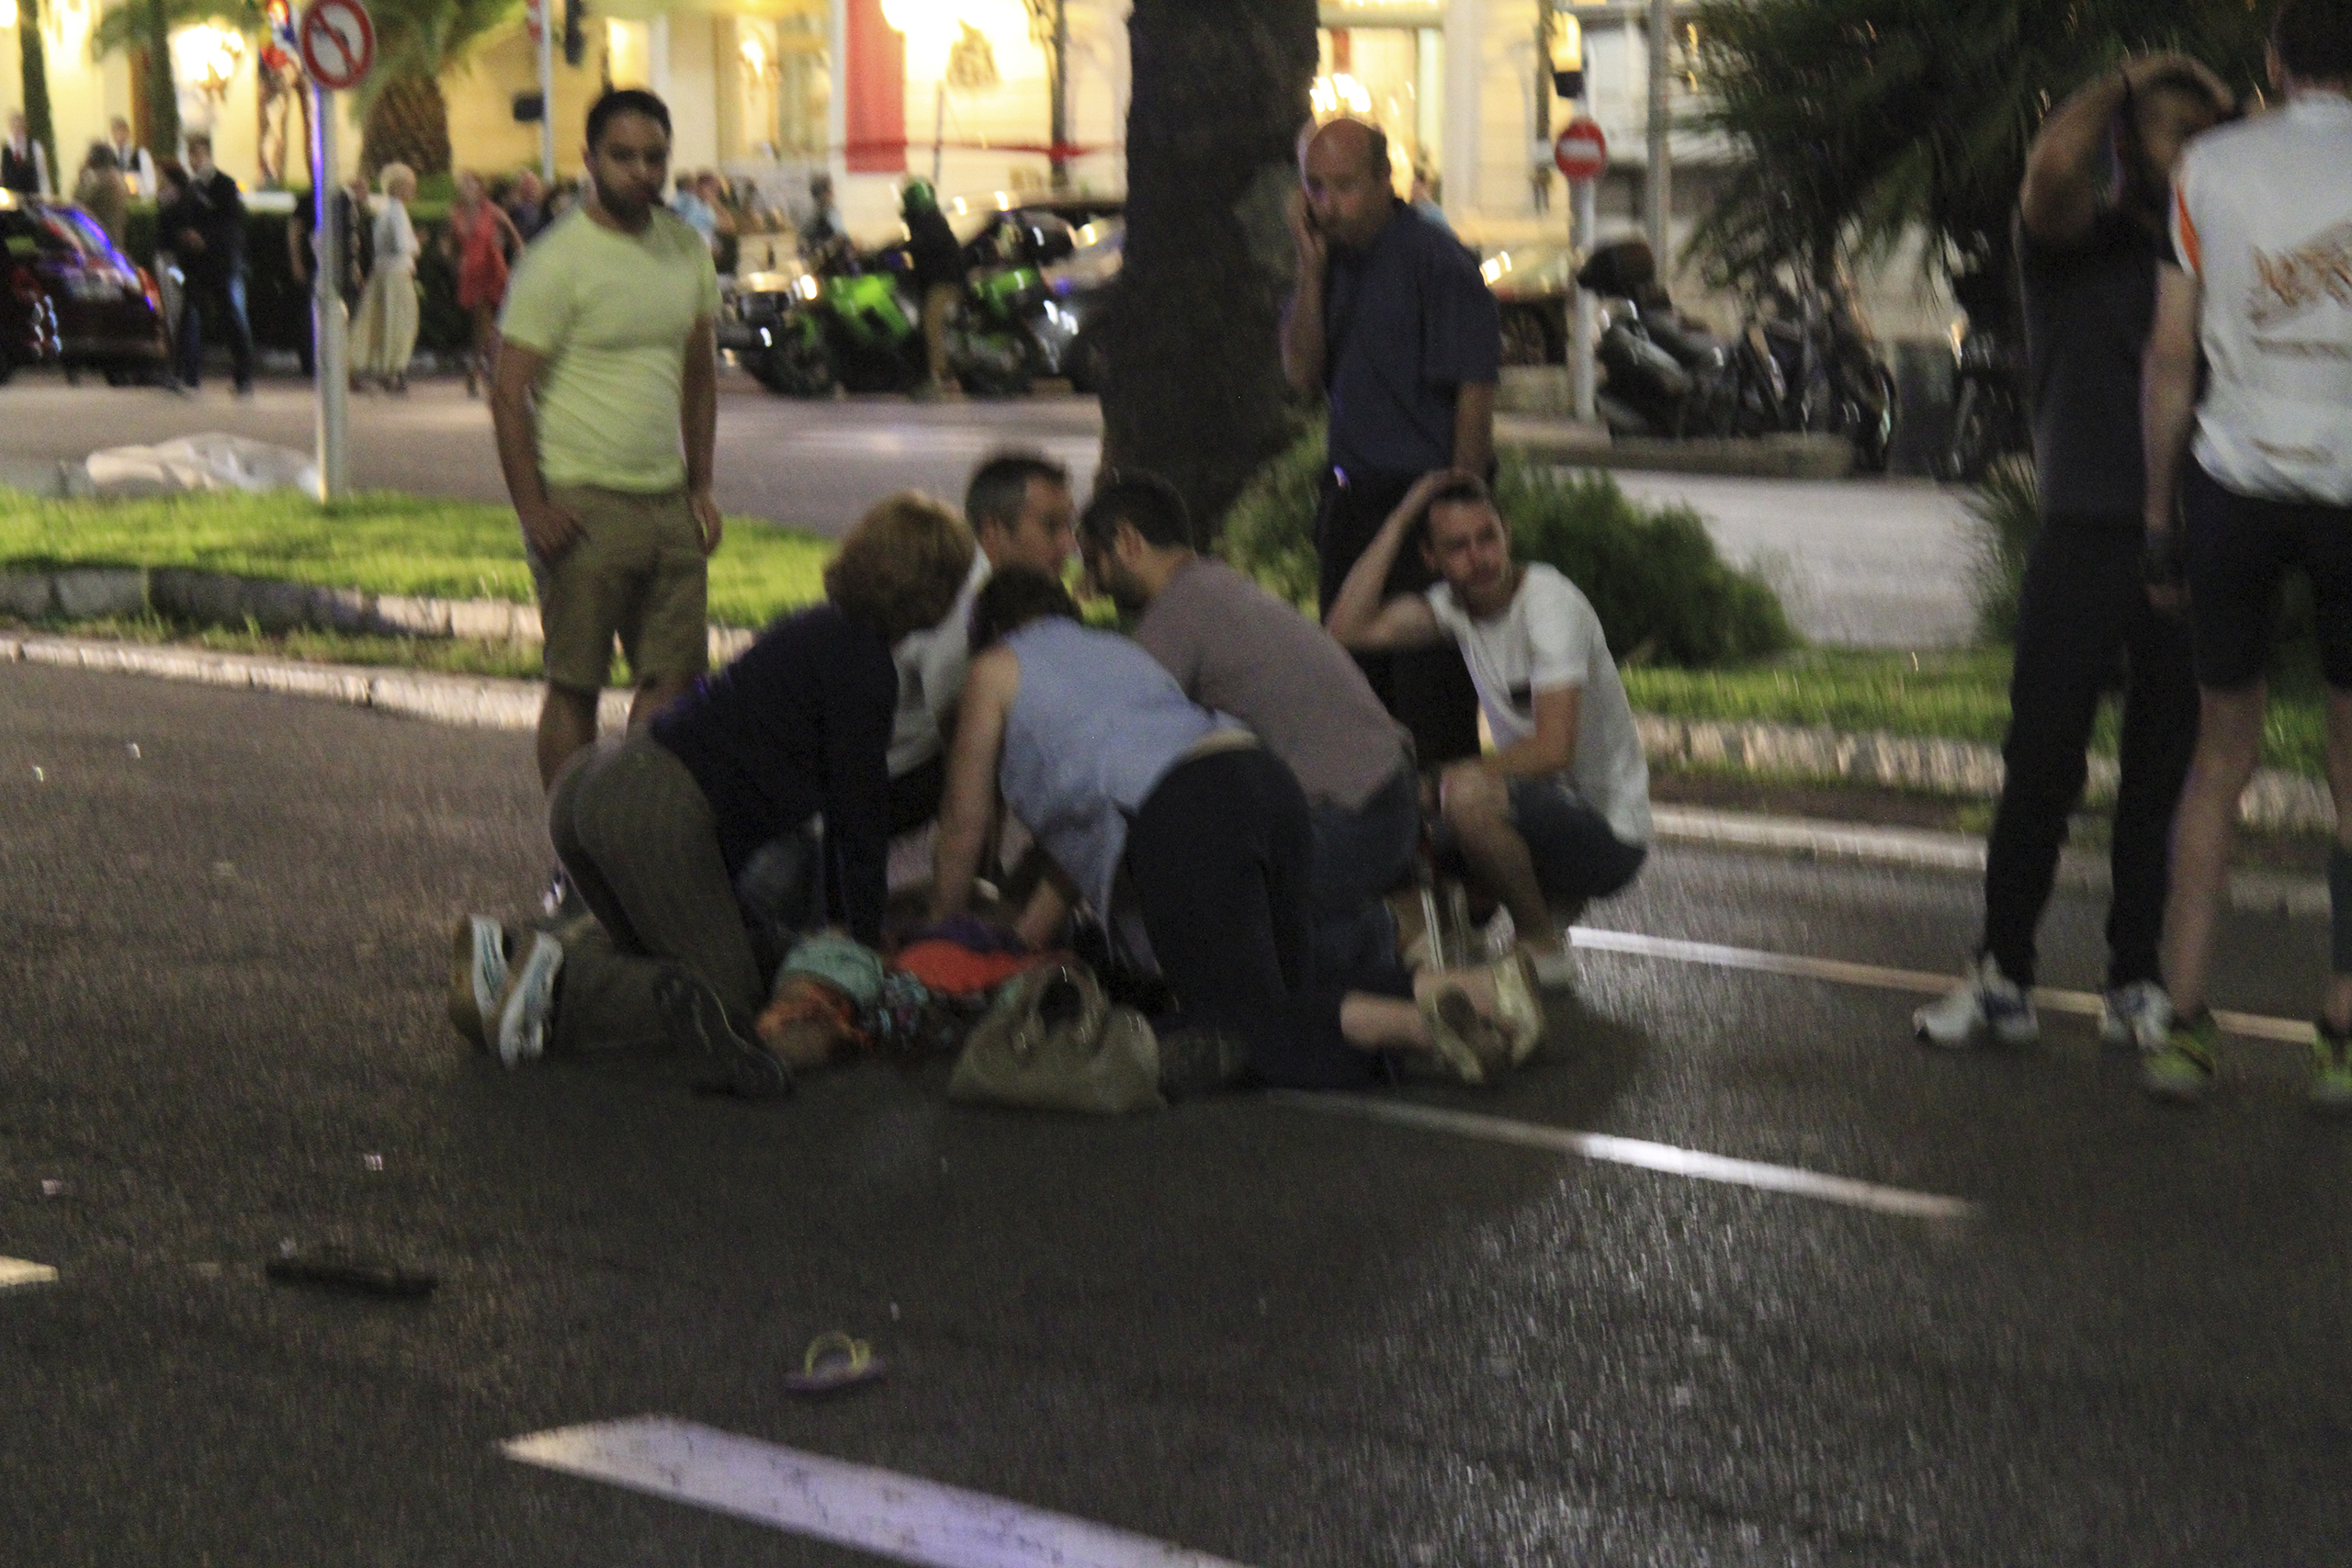 Bystanders tend to victims after a terrorist attack in Nice, France, that  left 77 dead and many more injured, July 14, 2016